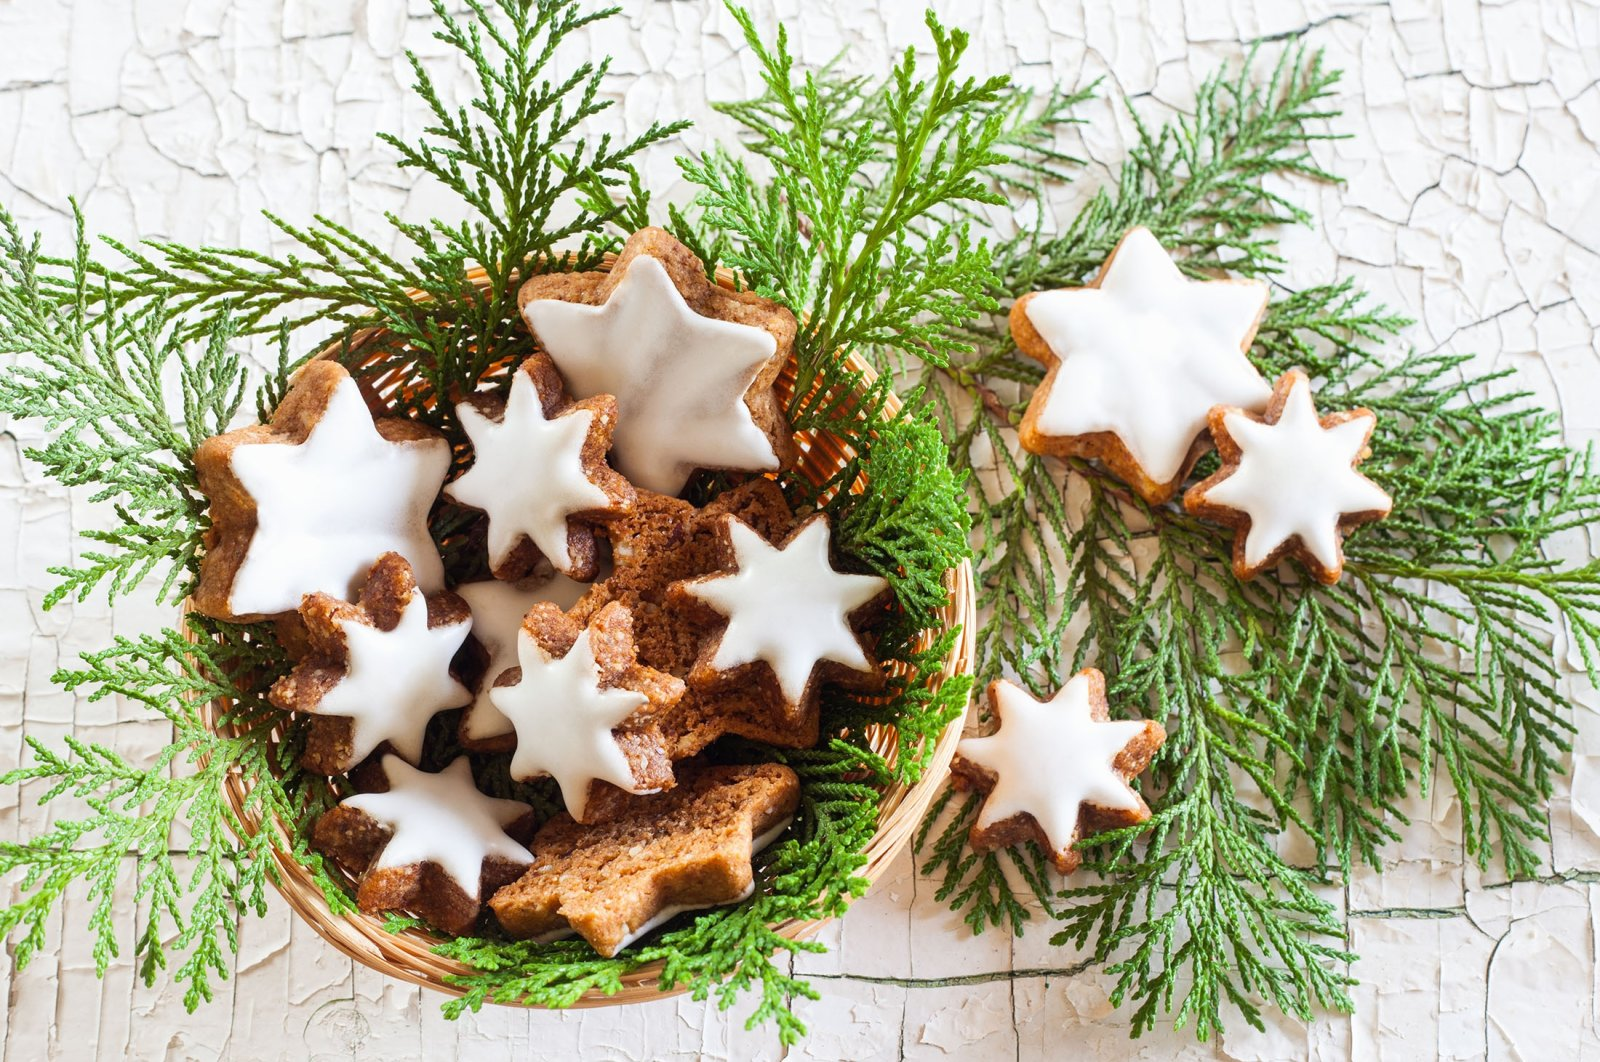 """Typical traditional German Christmas cookies called """"Zimtstern"""" that are made from almond flour, cinnamon, whipped egg white and sugar."""